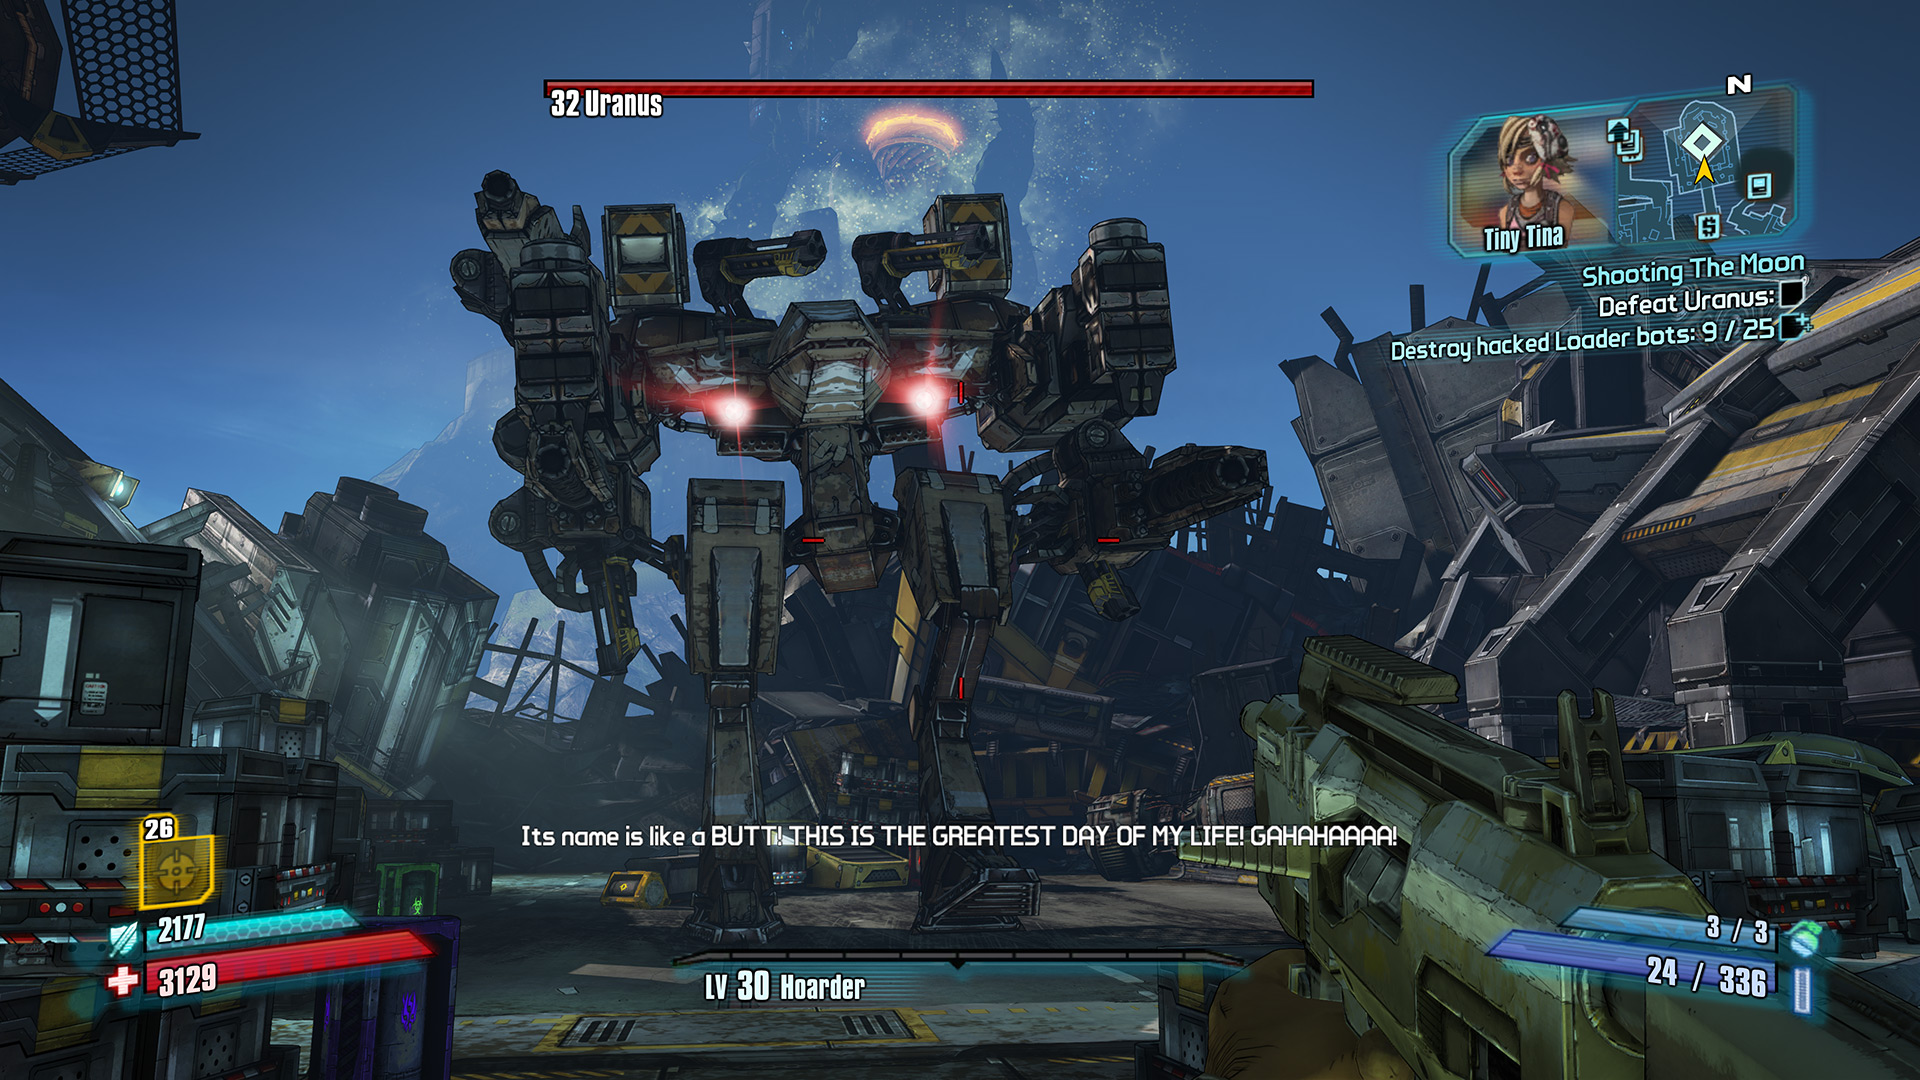 Claim Borderlands 2 add-on: Commander Lilith & the Fight for Sanctuary for free